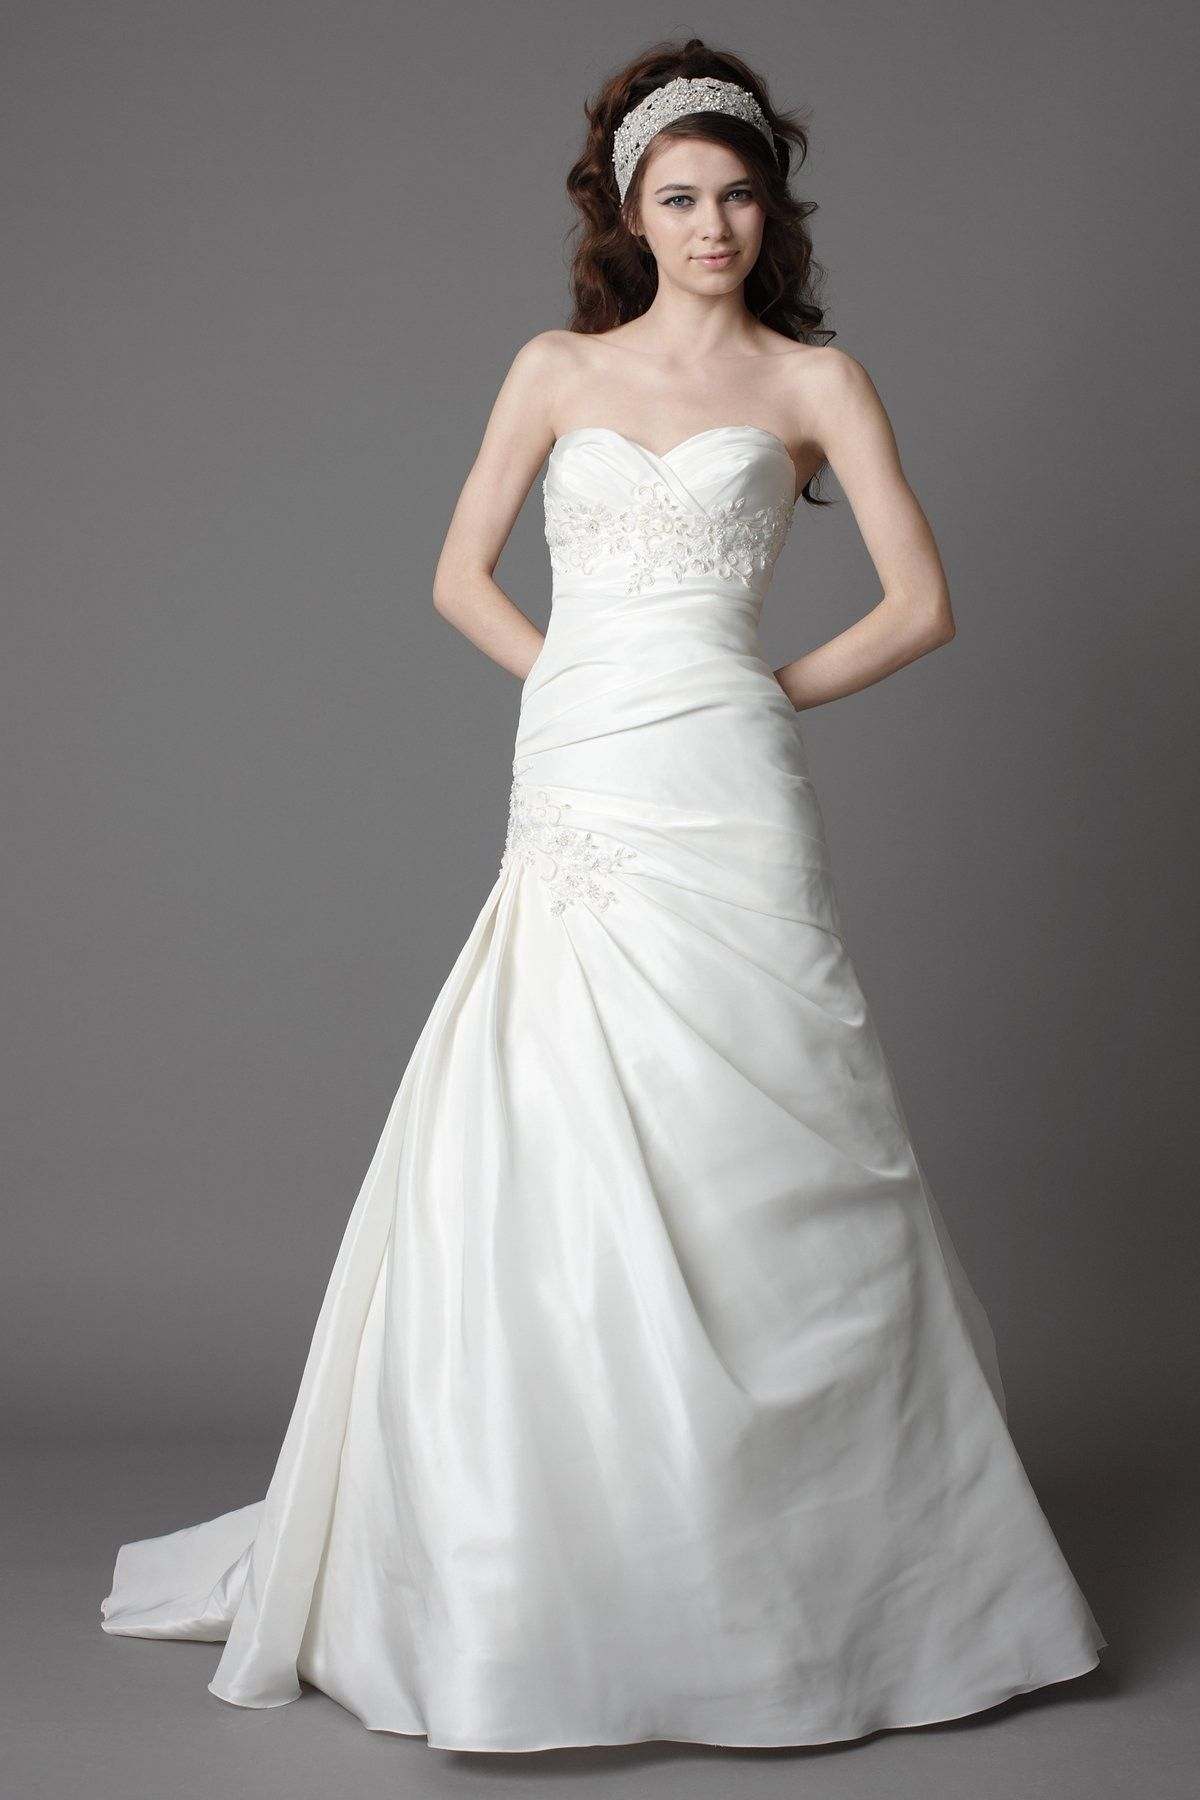 Simple and cheap wedding dresses  Simple Silky Taffeta Strapless Wedding Gown  Wedding Dresses